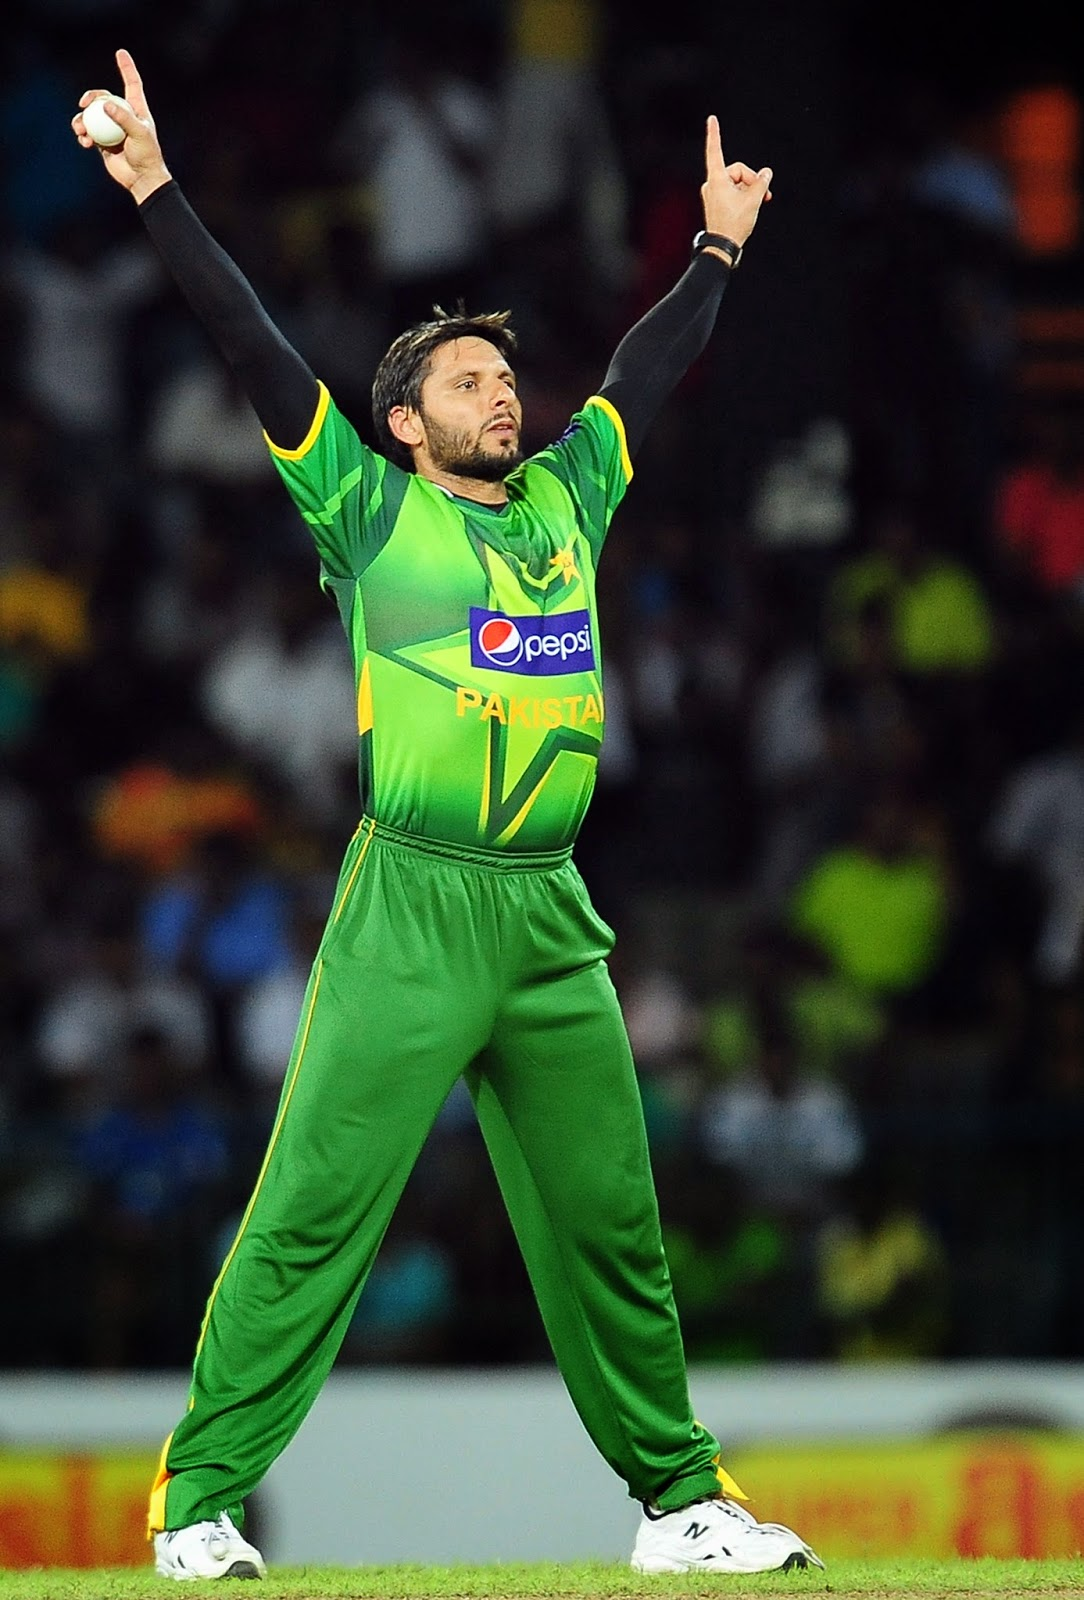 Shahid afridi hd wallpapers hd pictures of shahid afridi hd photos - Pakistan cricket wallpapers hd ...